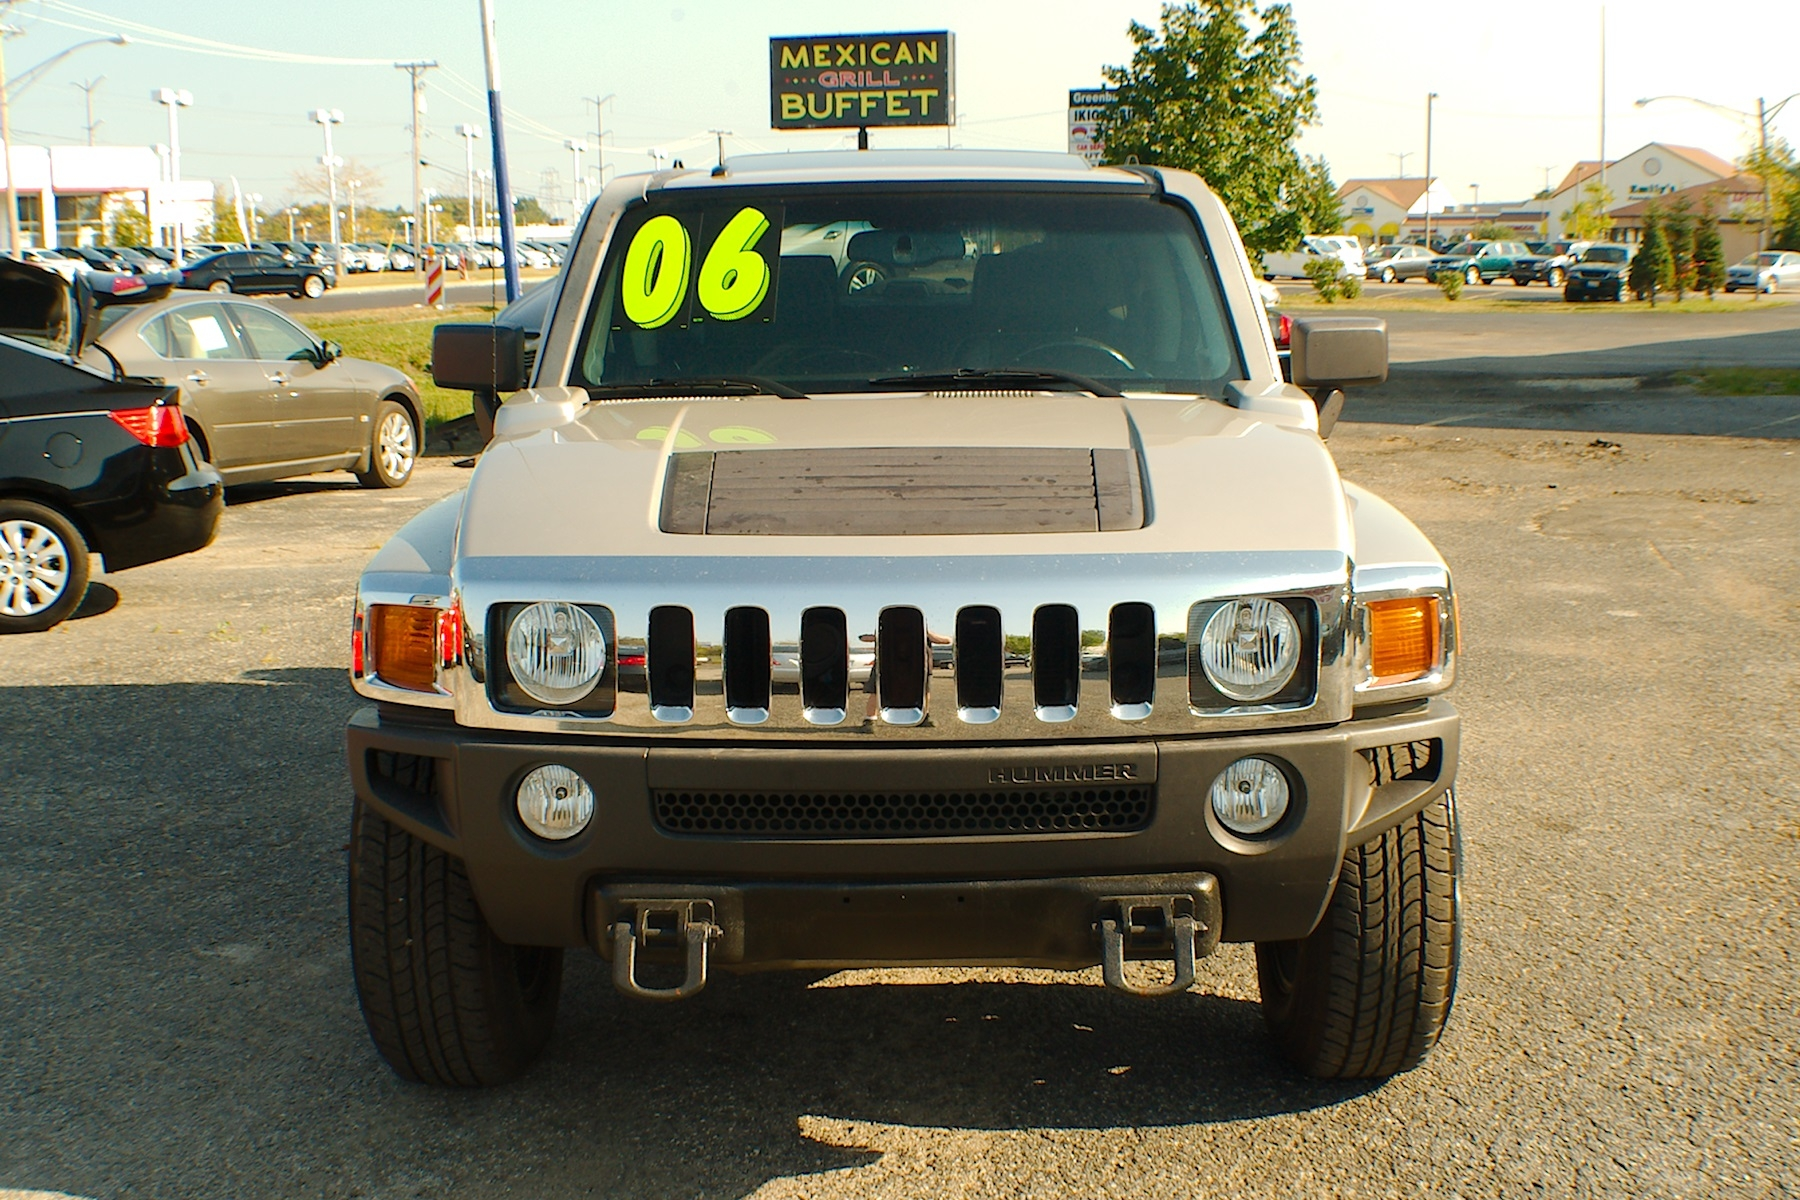 2006 Hummer H3 Pewter 4x4 SUV Used Car Sale Gurnee Kenosha Mchenry Chicago Illinois